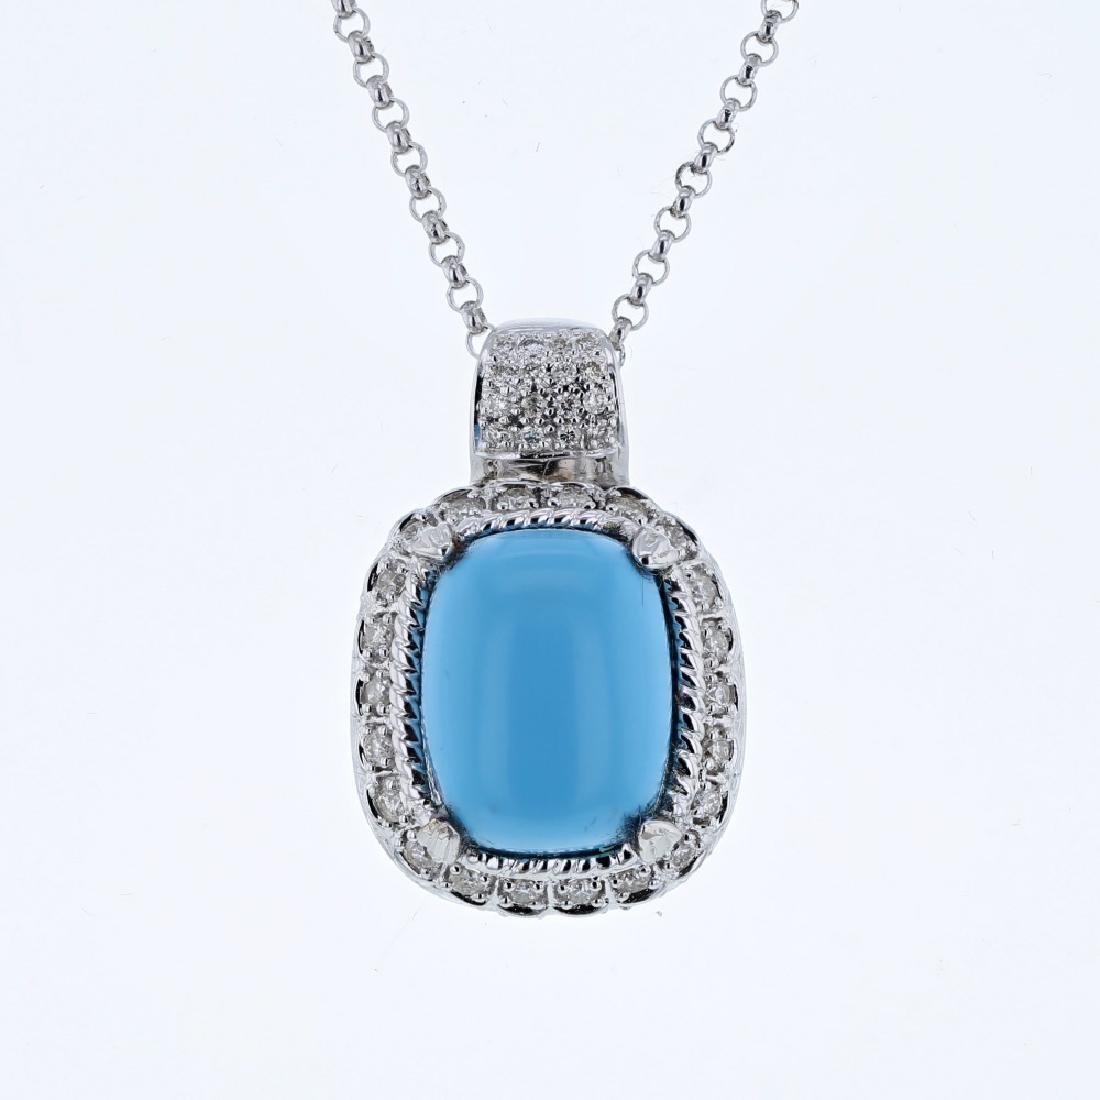 14KT White Gold 7.13ct Turquoise and Diamond Pendant